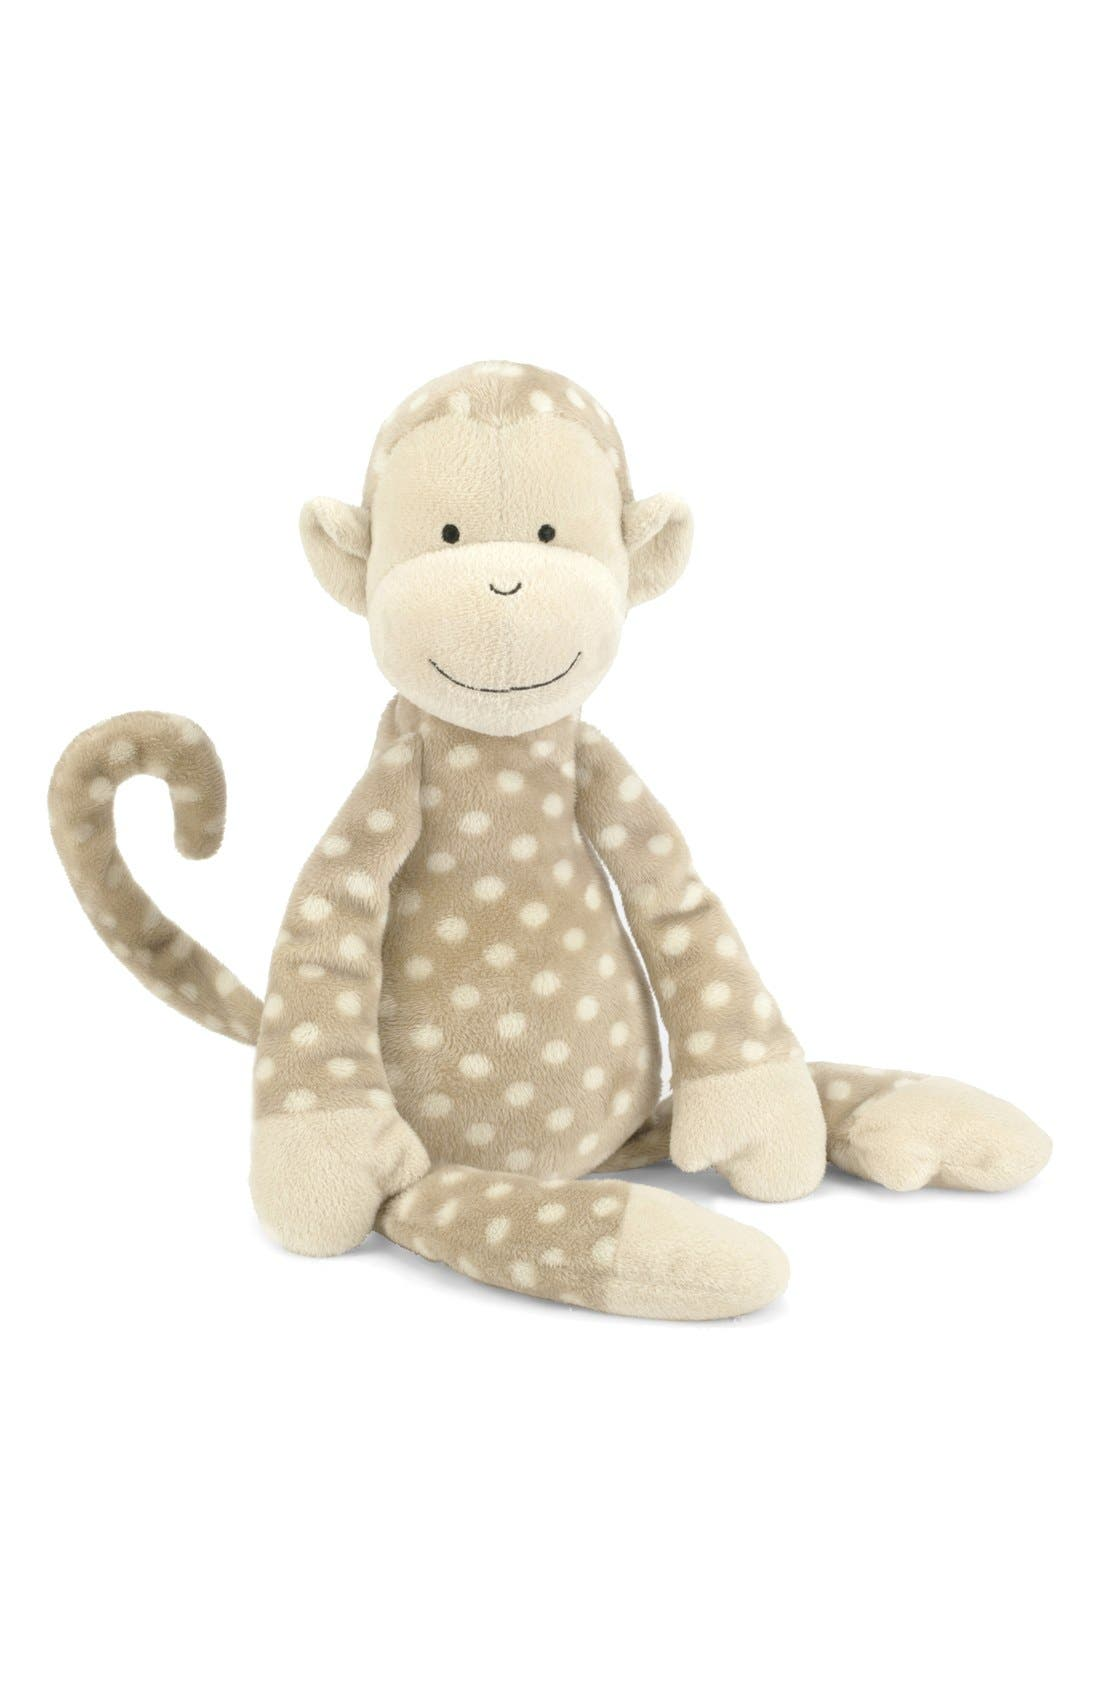 'Monty Monkey' Stuffed Animal,                         Main,                         color, Brown/ Cream